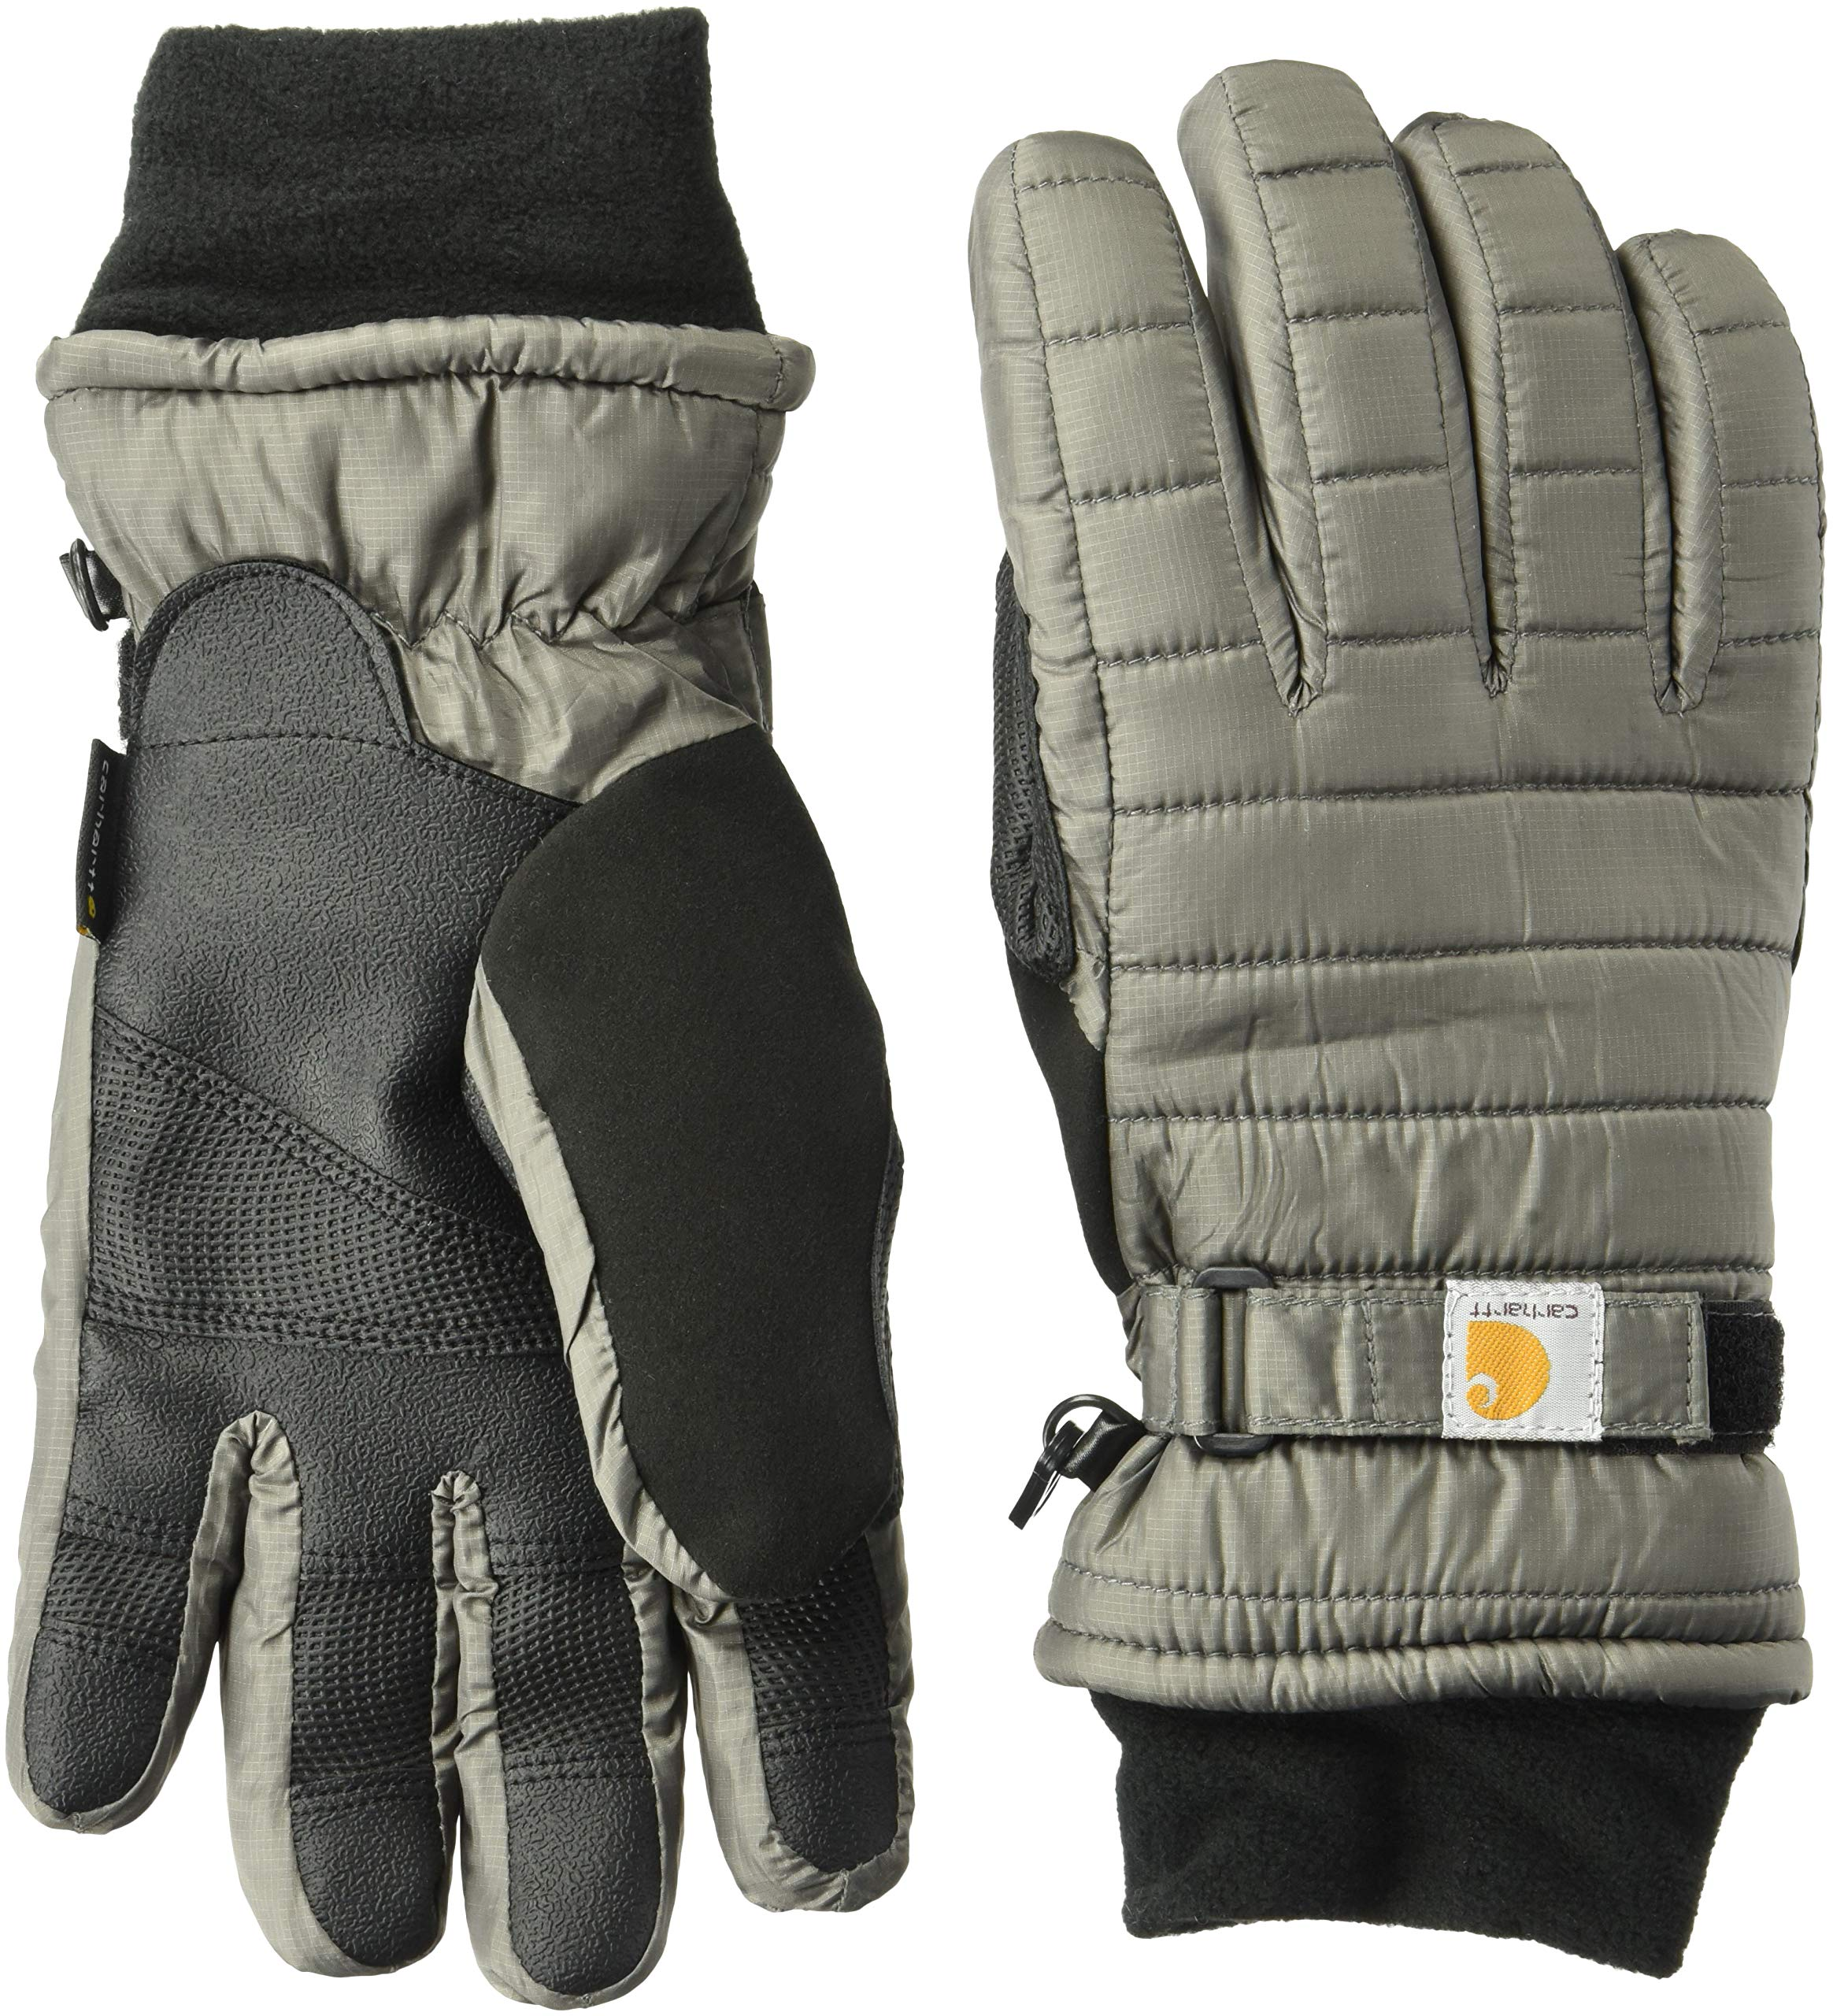 Carhartt Women's Quilts Insulated Glove with Waterproof Wicking Insert, Charcoal, Small